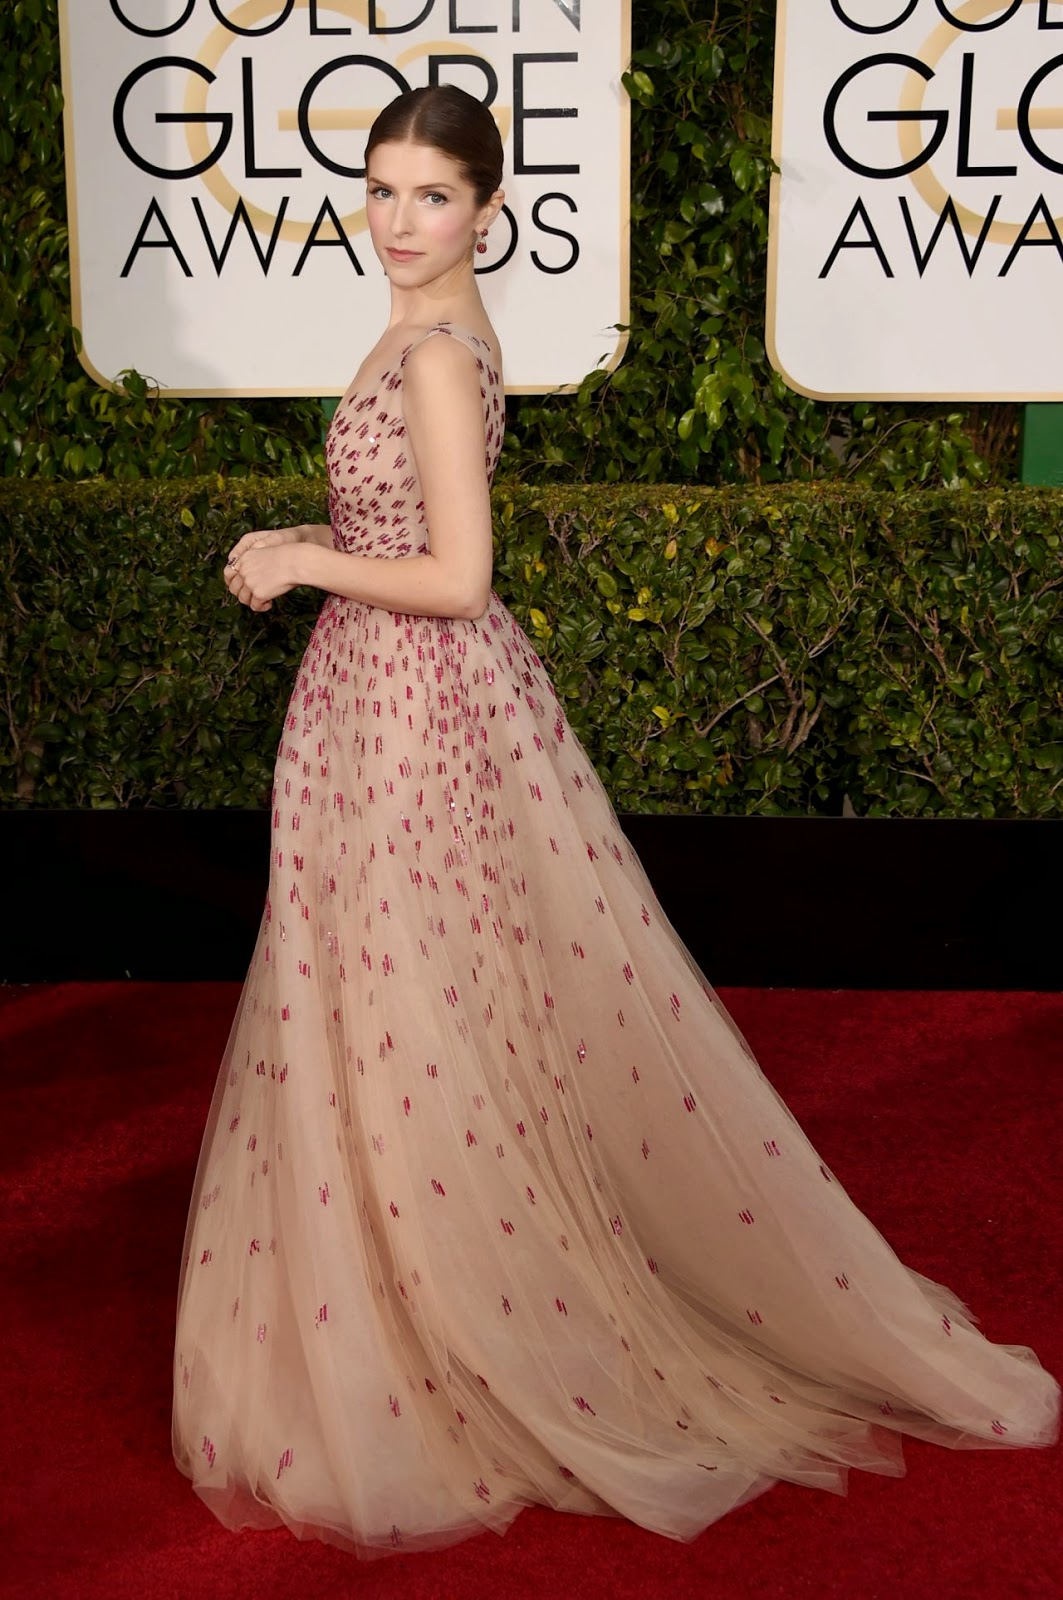 Anna Kendrick wows in Monique Lhuillier at 2015 Golden Globes